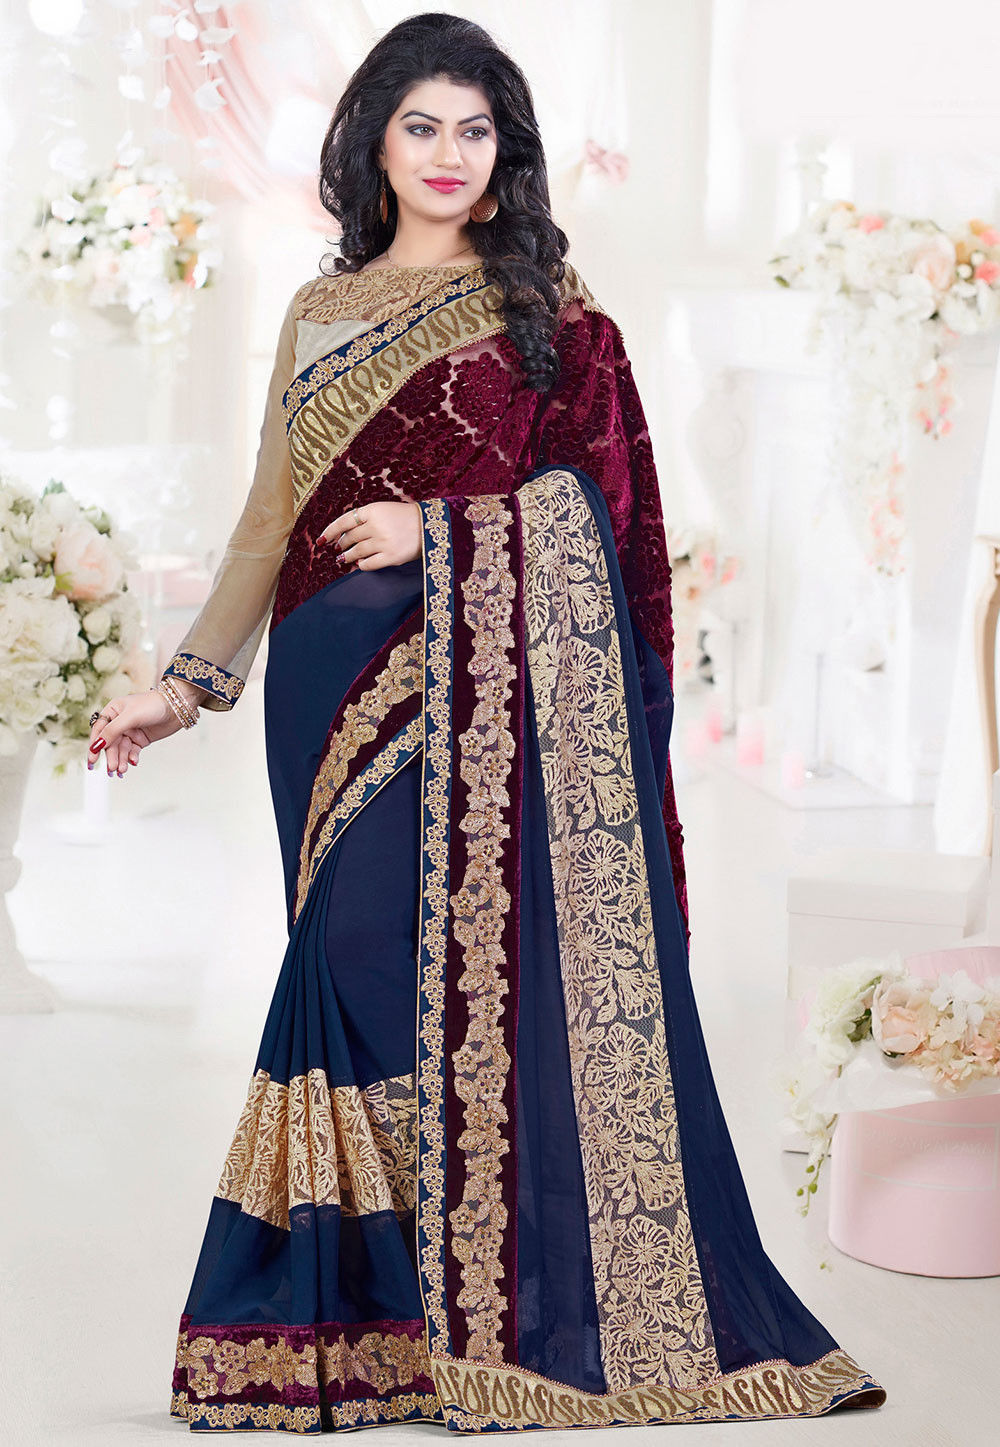 Embroidered Georgette Saree in Navy Blue and Wine